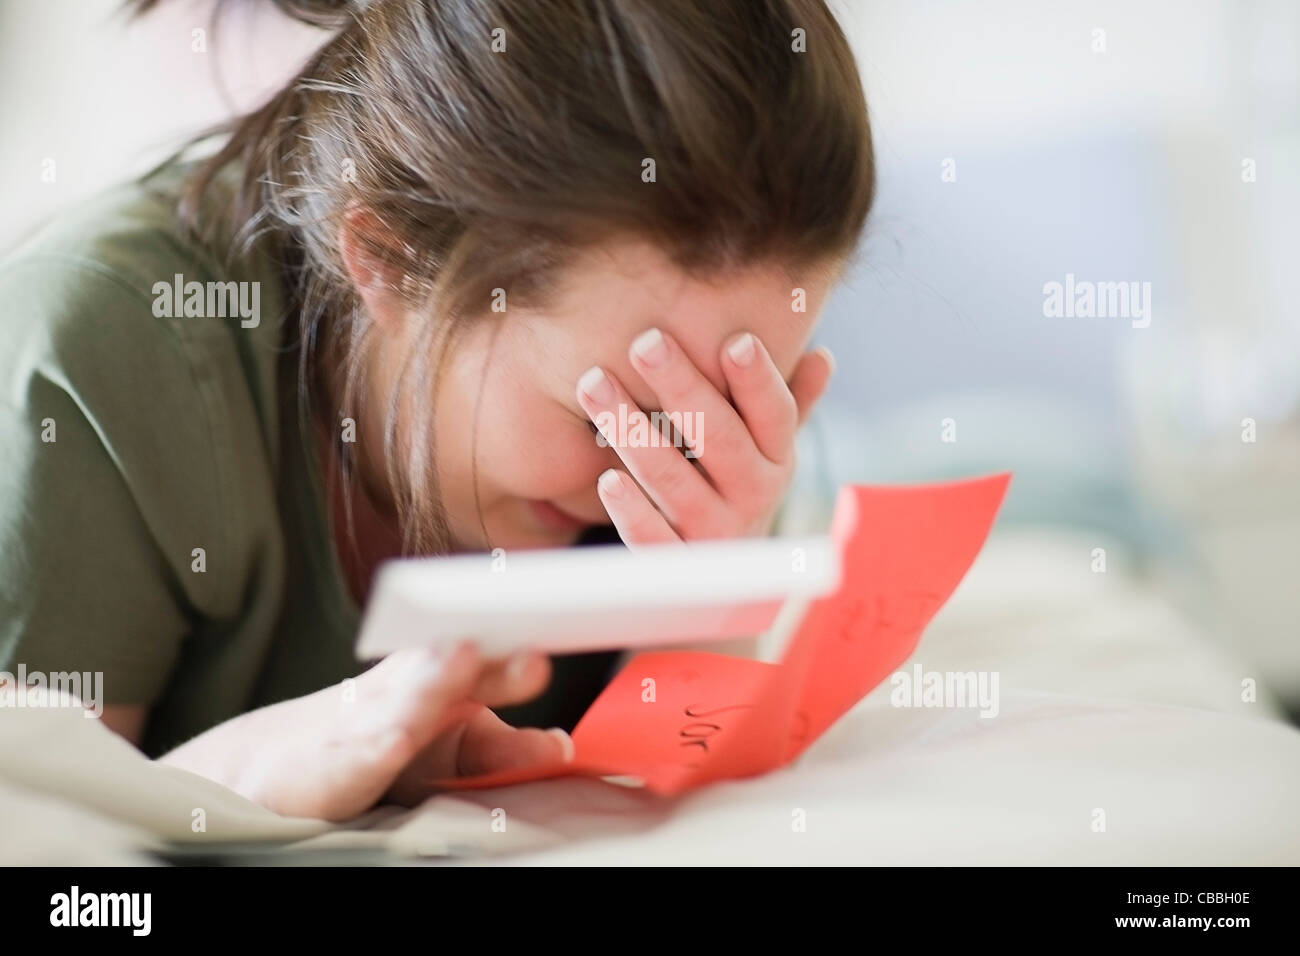 Crying teenage girl reading letter - Stock Image